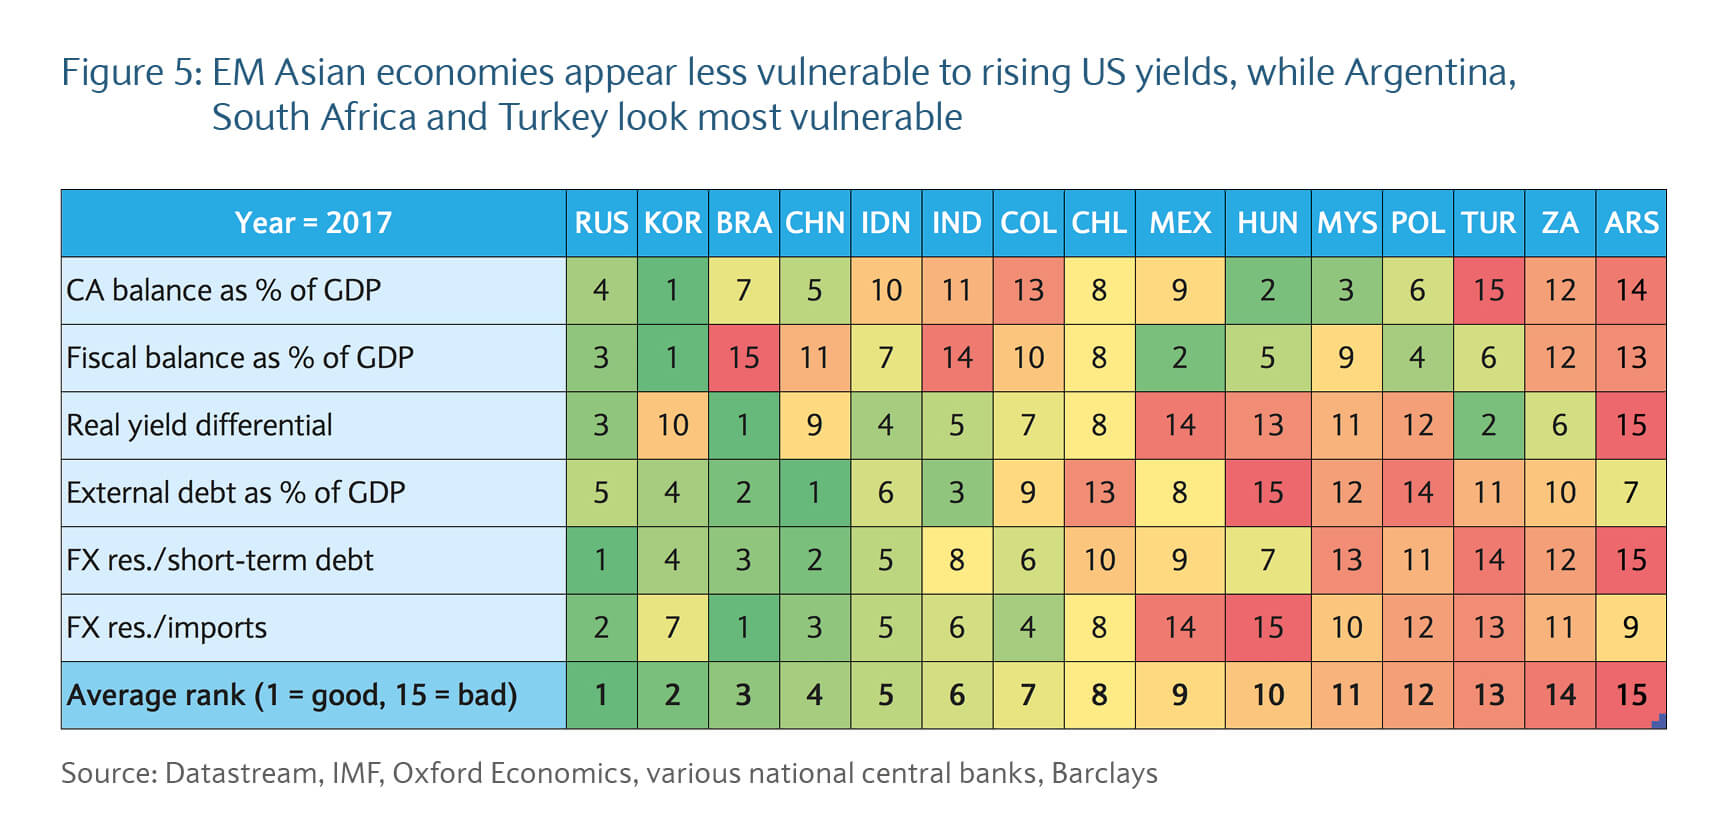 EM Asian economies appear less vulnerable to rising US yields, while Argentina, South Afica and Turkey look most vulnerable